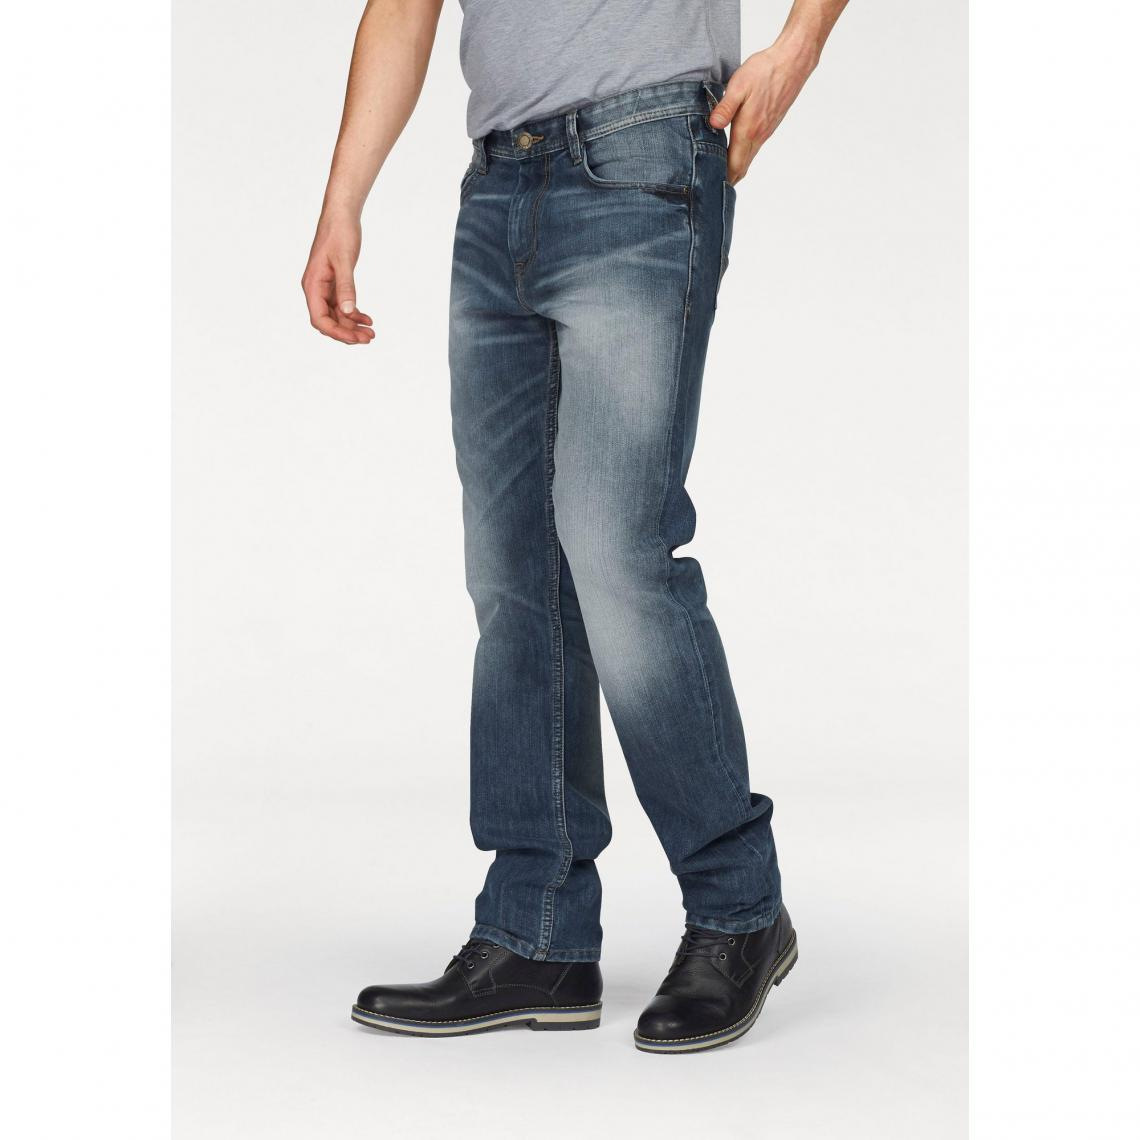 0c6f261f6de Jean Marvin slim used 5 poches L34 homme Tom Tailor - Multicolore Tom  tailor Homme